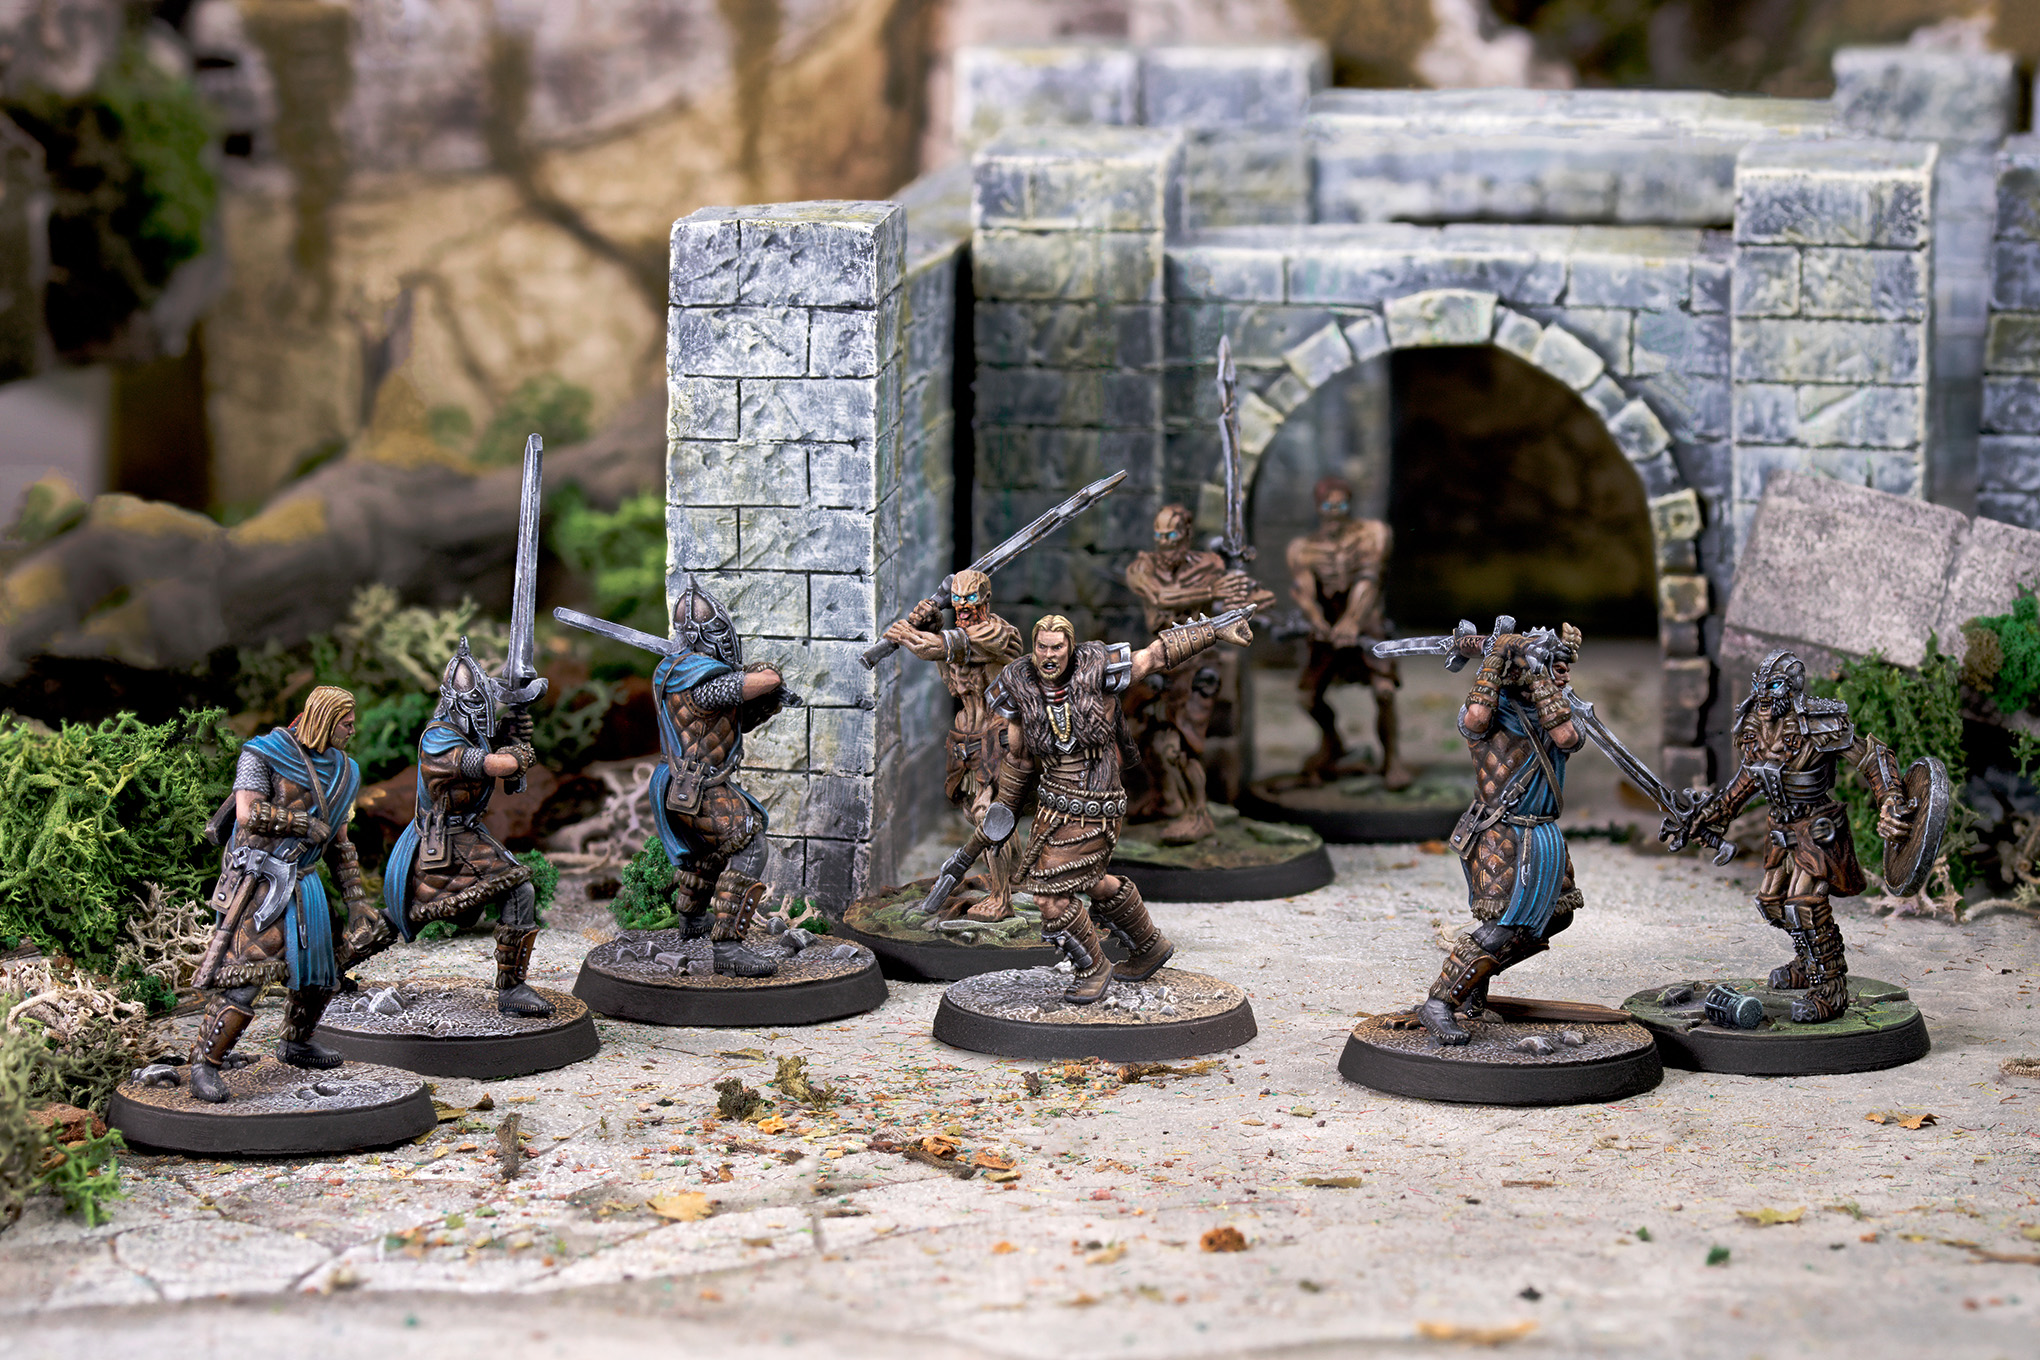 A new Elder Scrolls miniatures game captures the chaos of Skyrim's open world